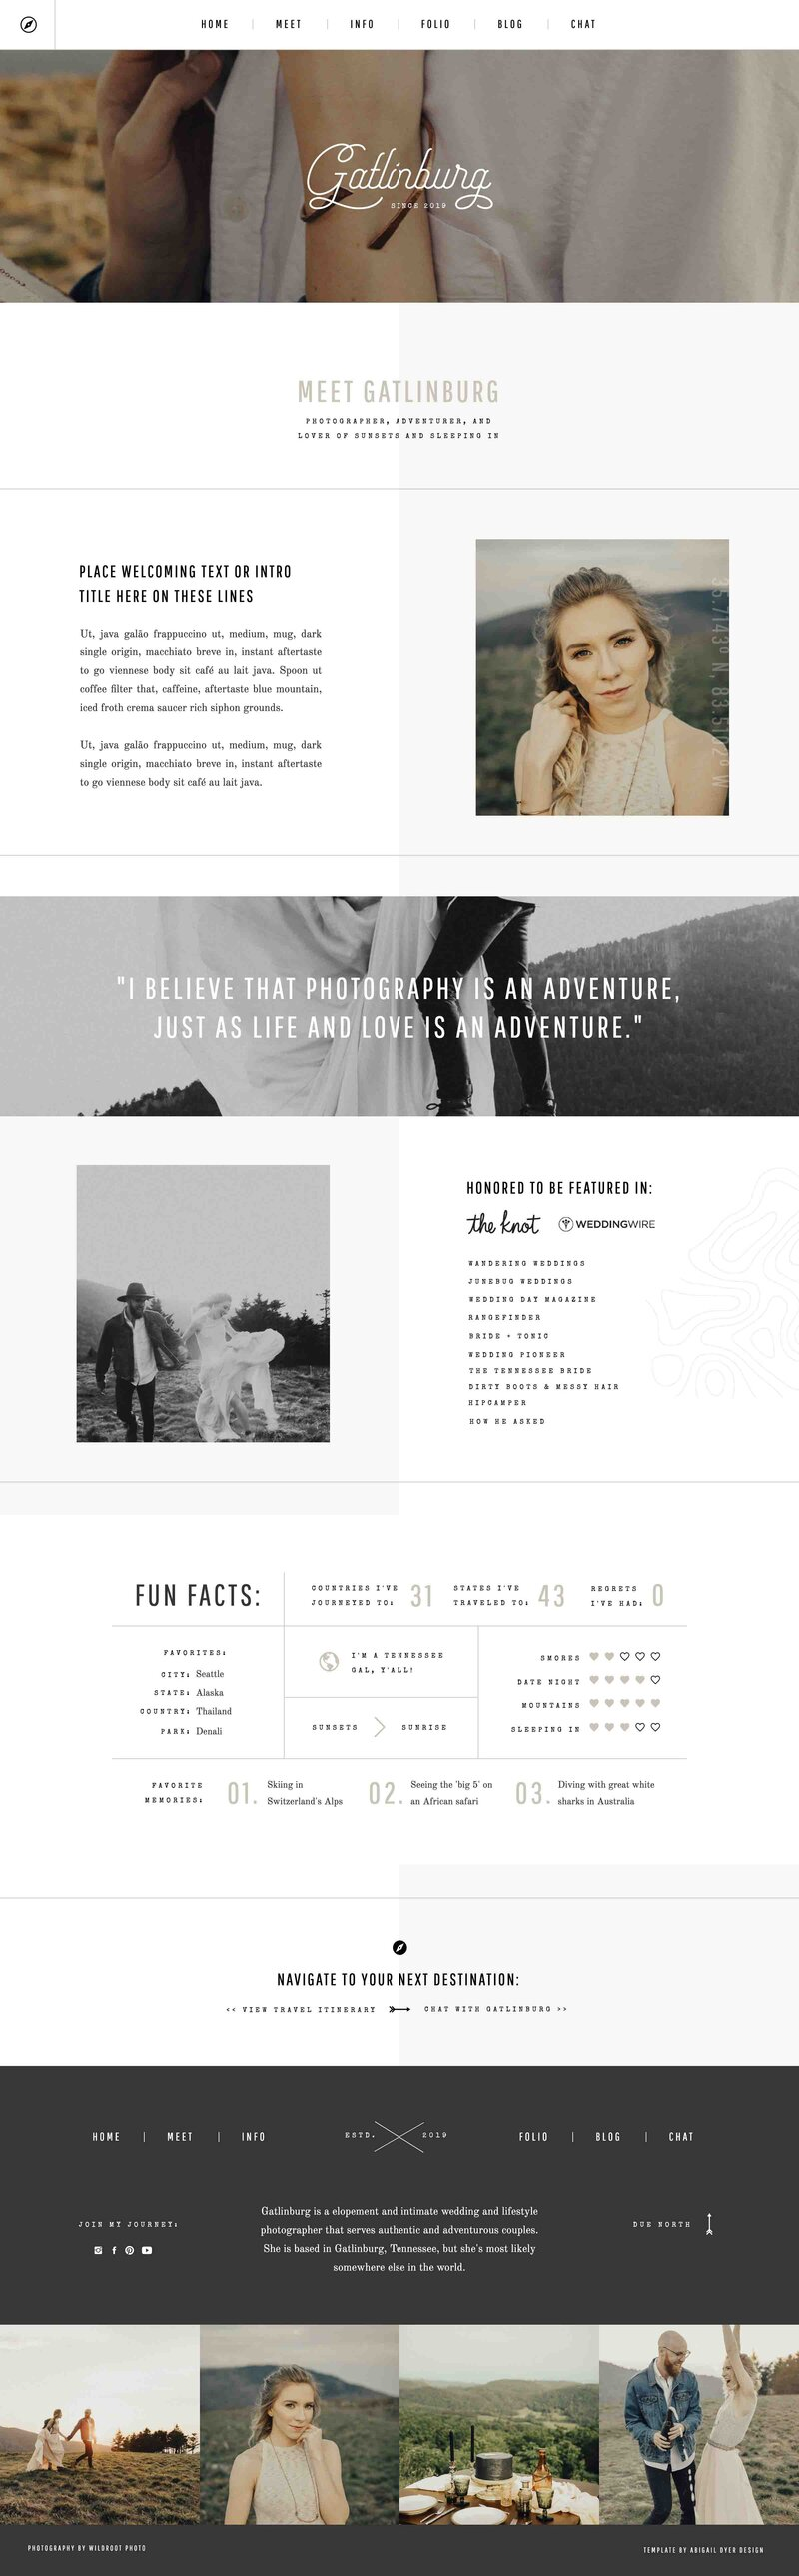 Showit-Website-Template-Gatlinburg_7